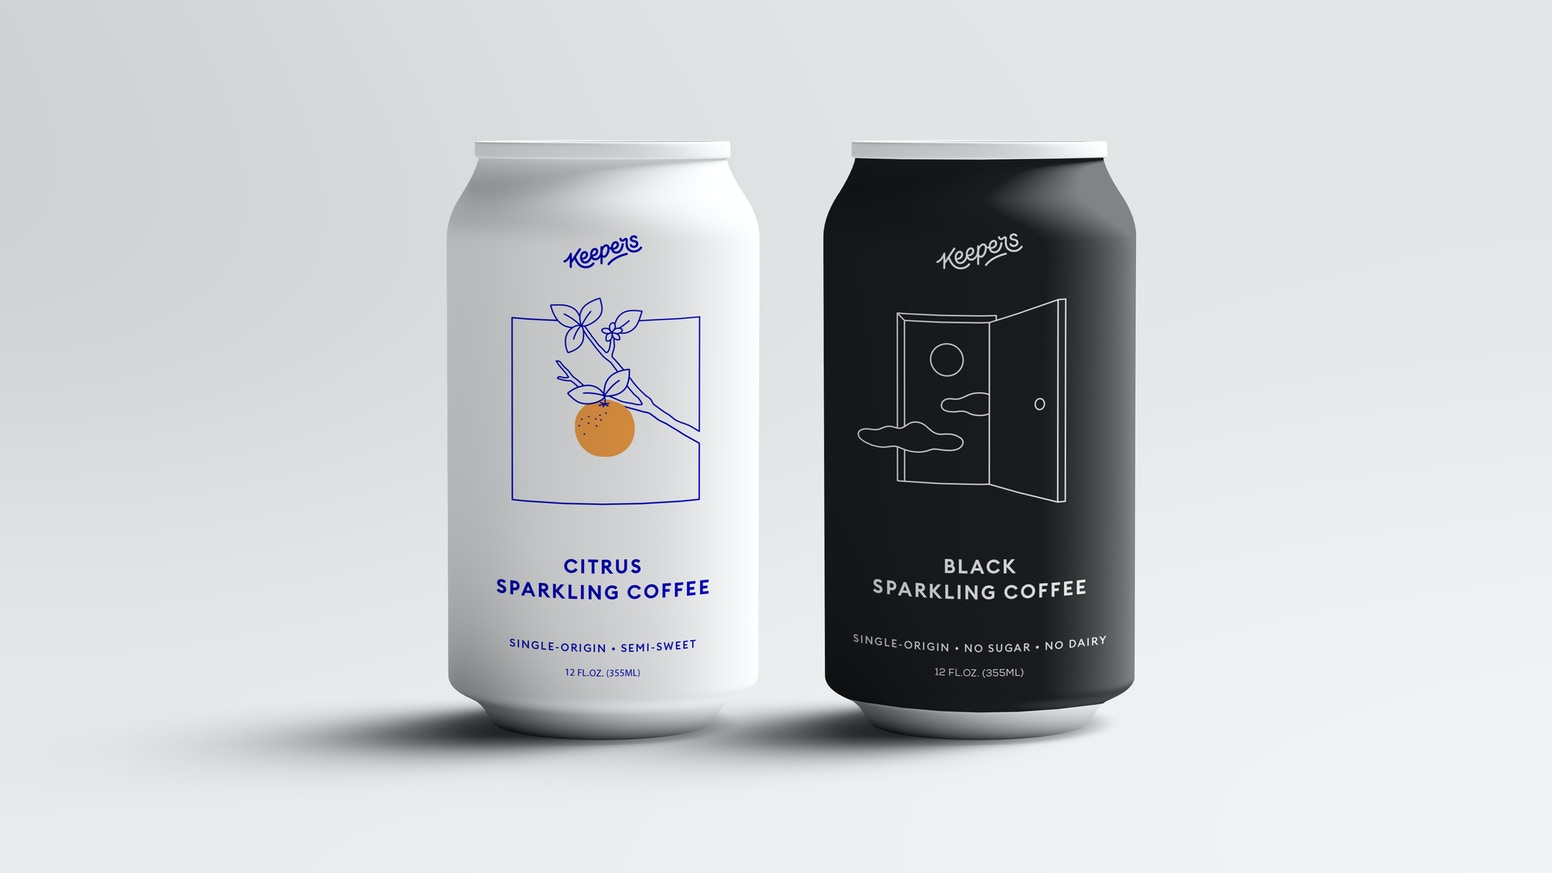 launching keepers black the original sparkling coffee by thi